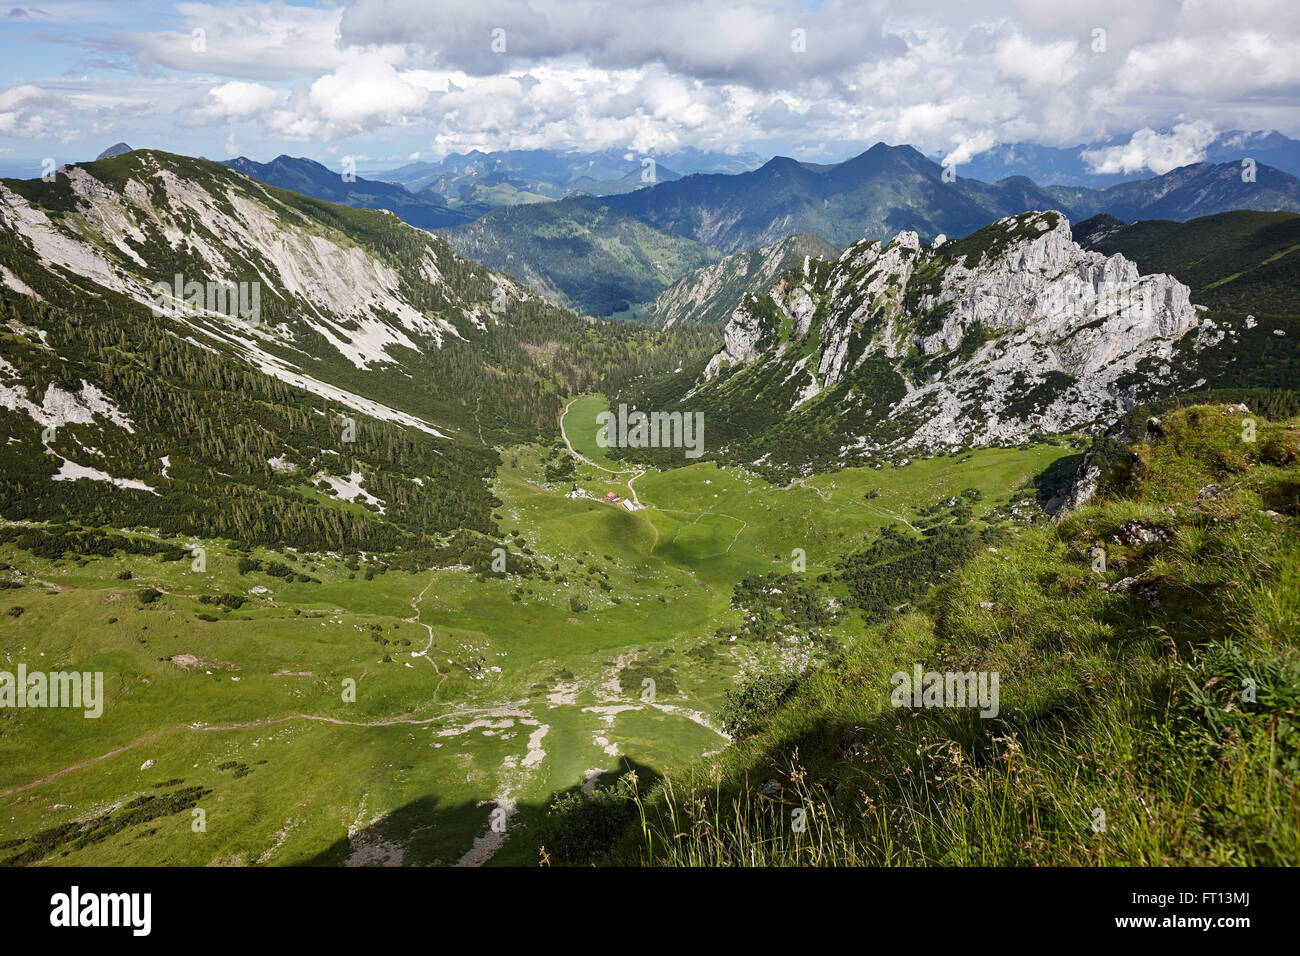 View from mount Rotwand over alp Grosstiefentalalm, Mangfall Mountains, Bavaria, Germany - Stock Image